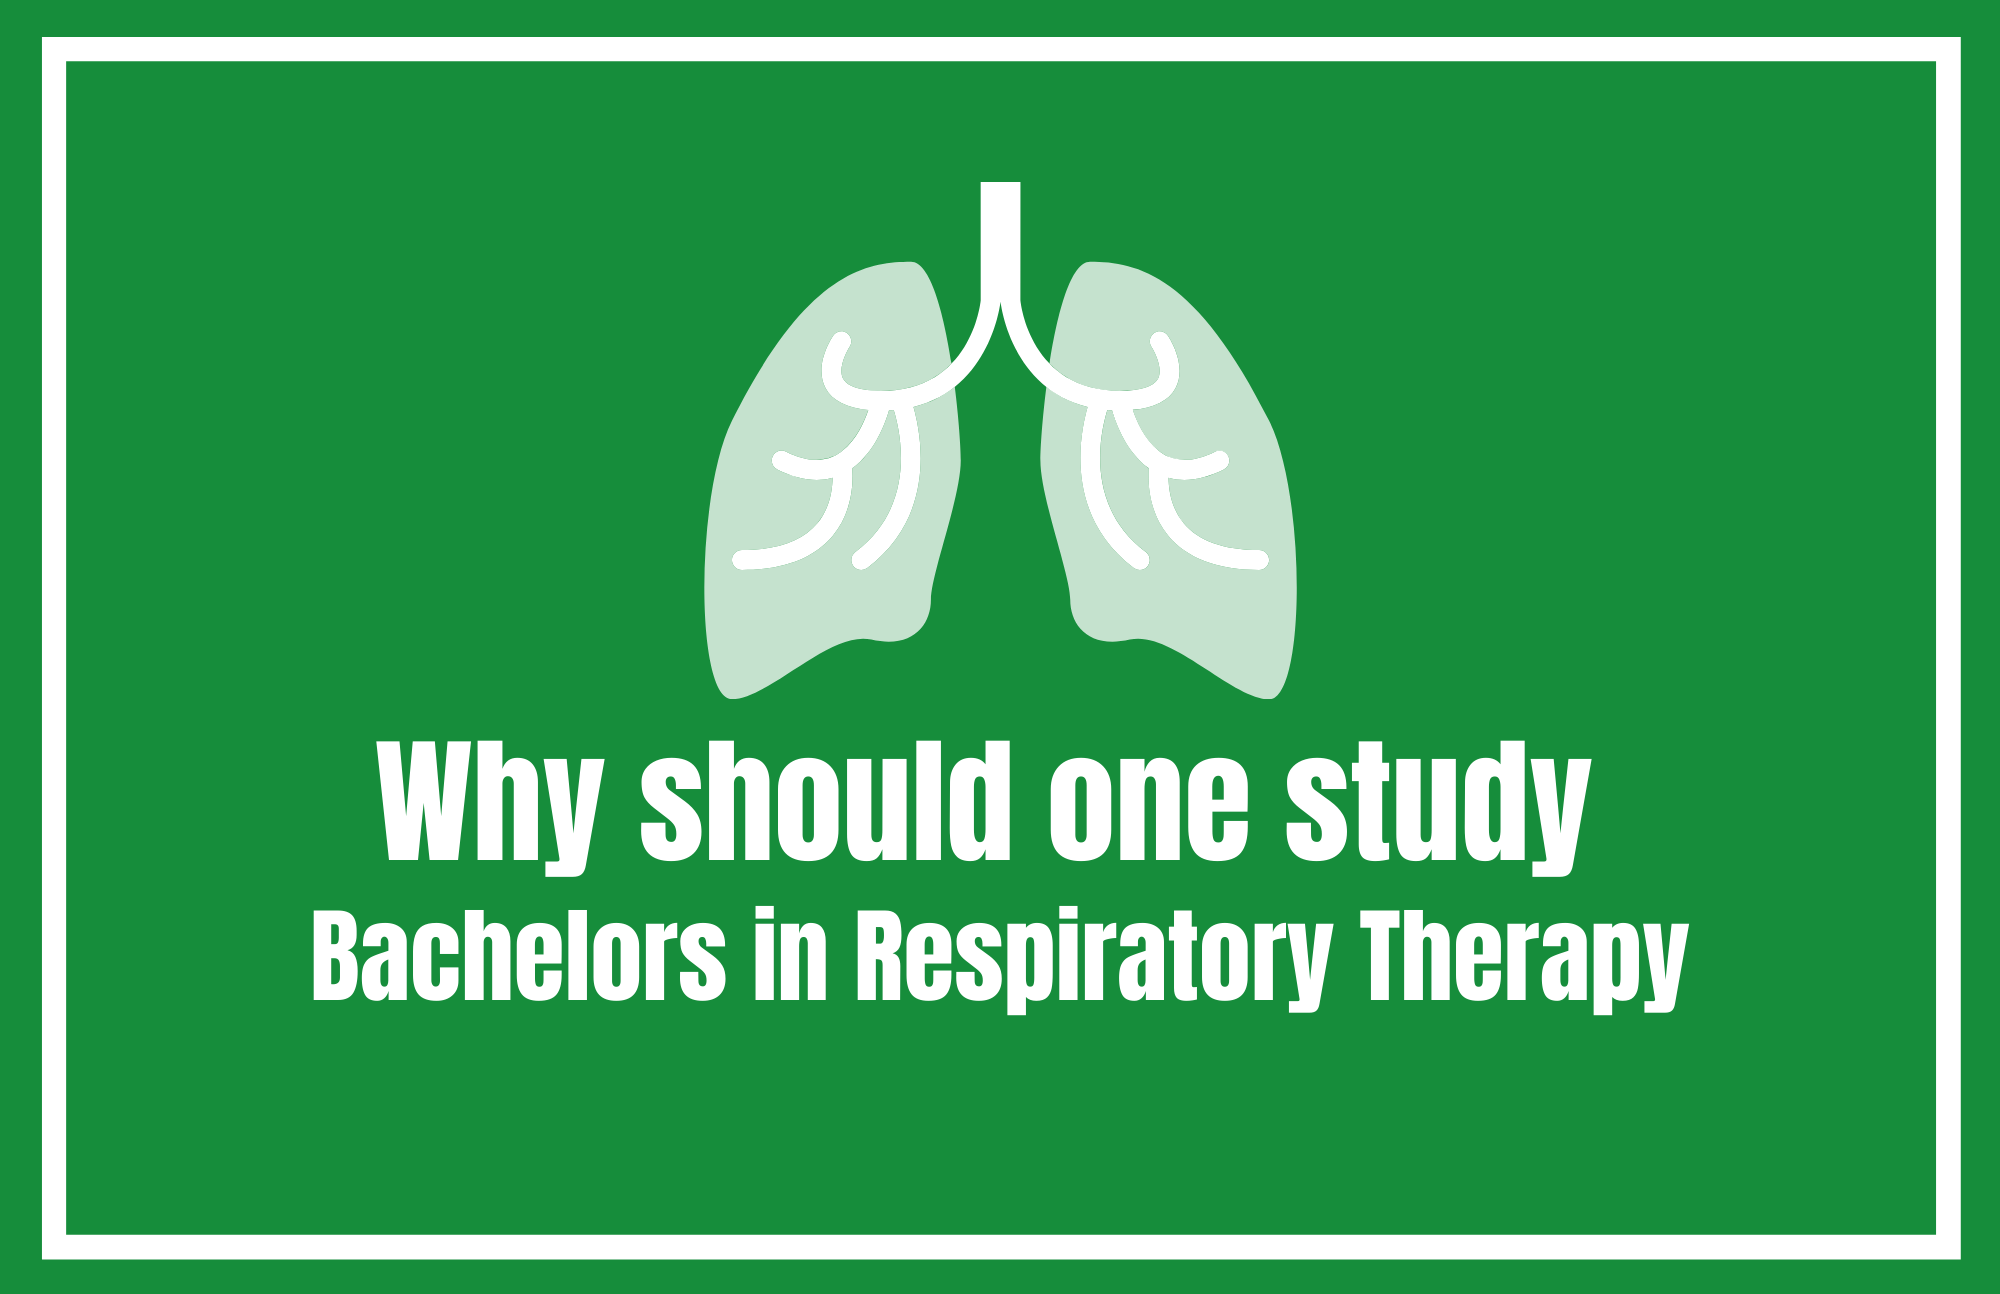 Bachelors in Respiratory Therapy